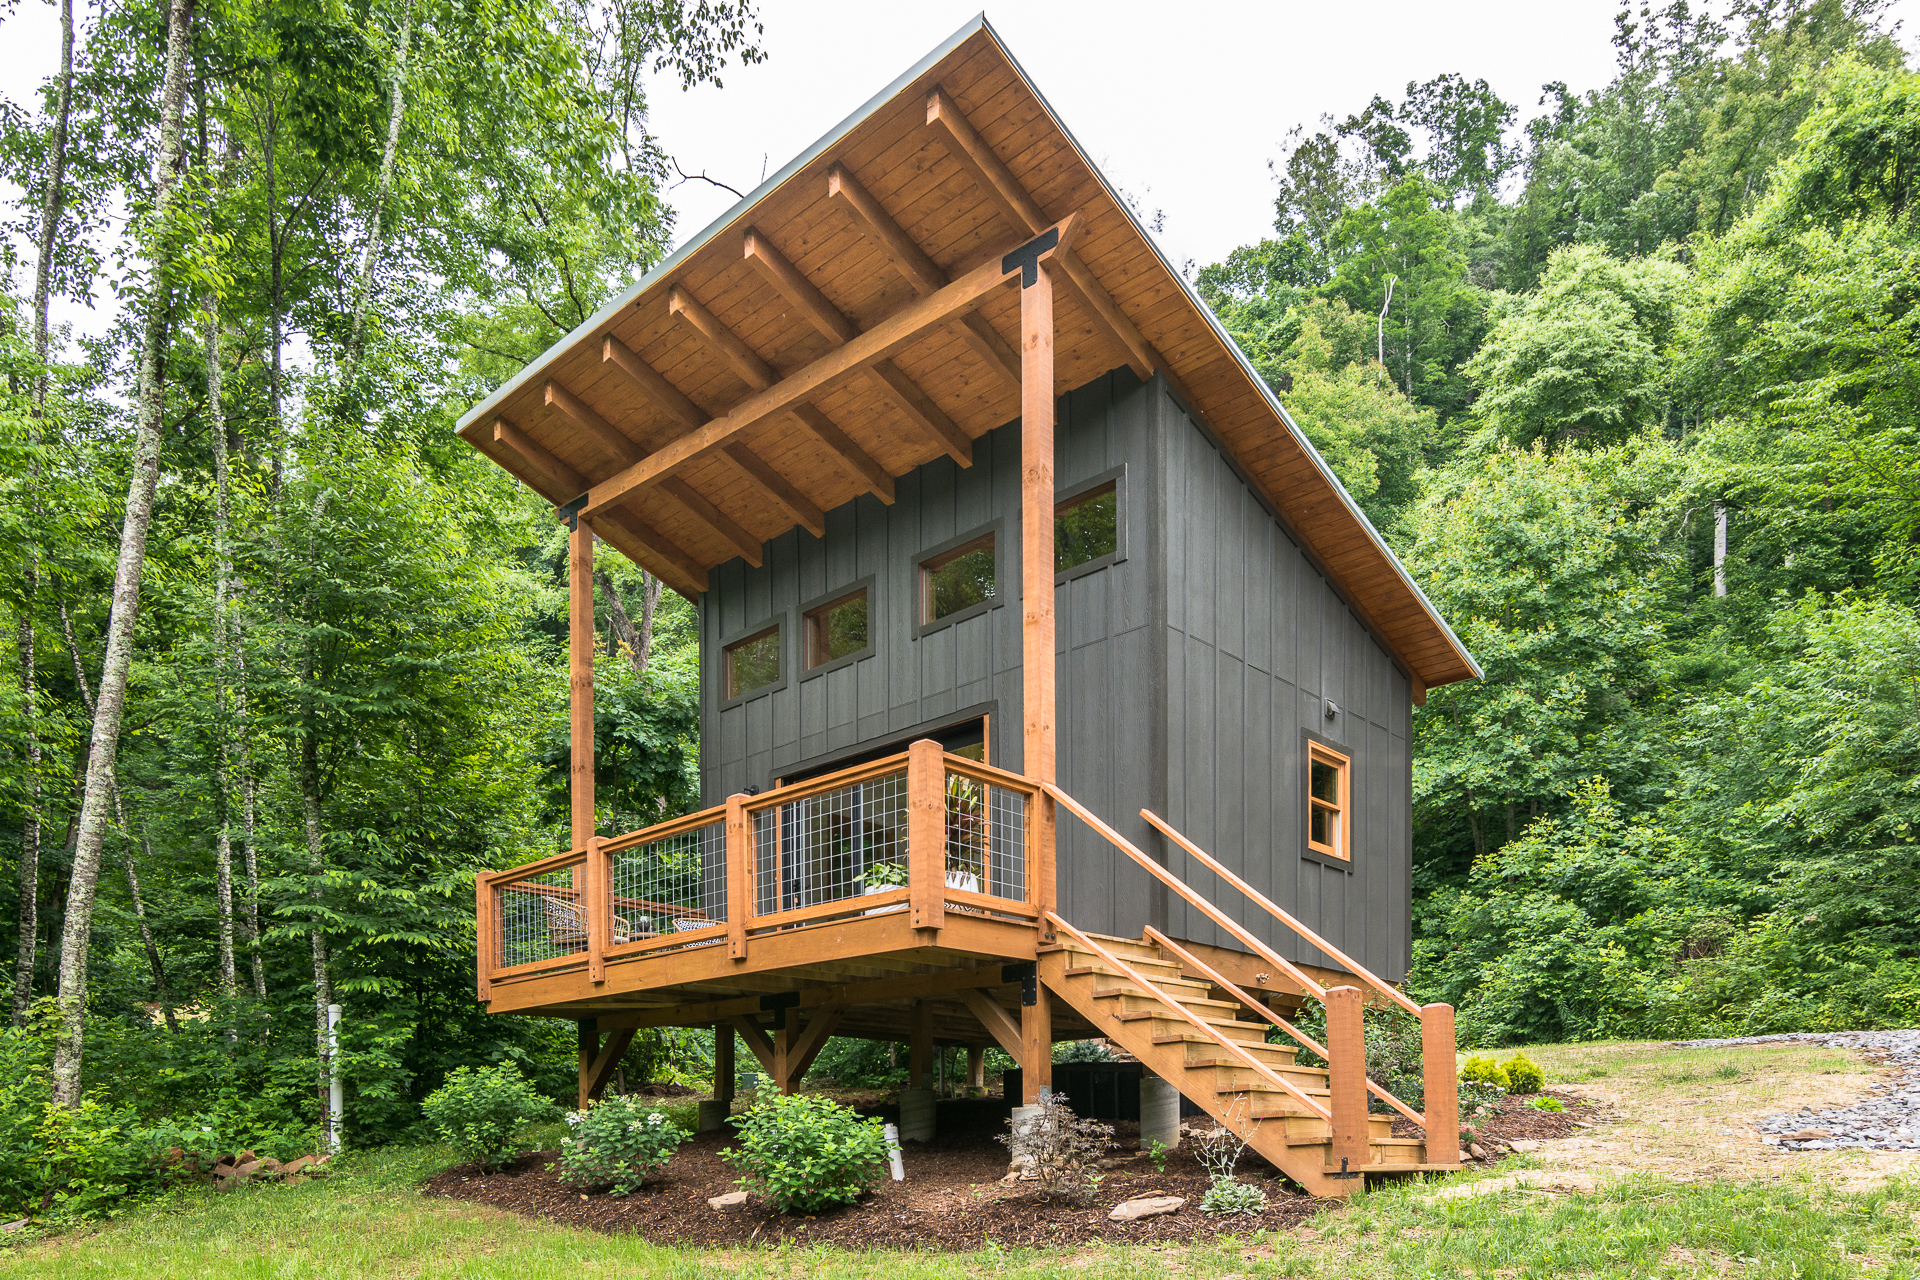 Outdoor photo of a cabin at Bliss Farm and Retreat